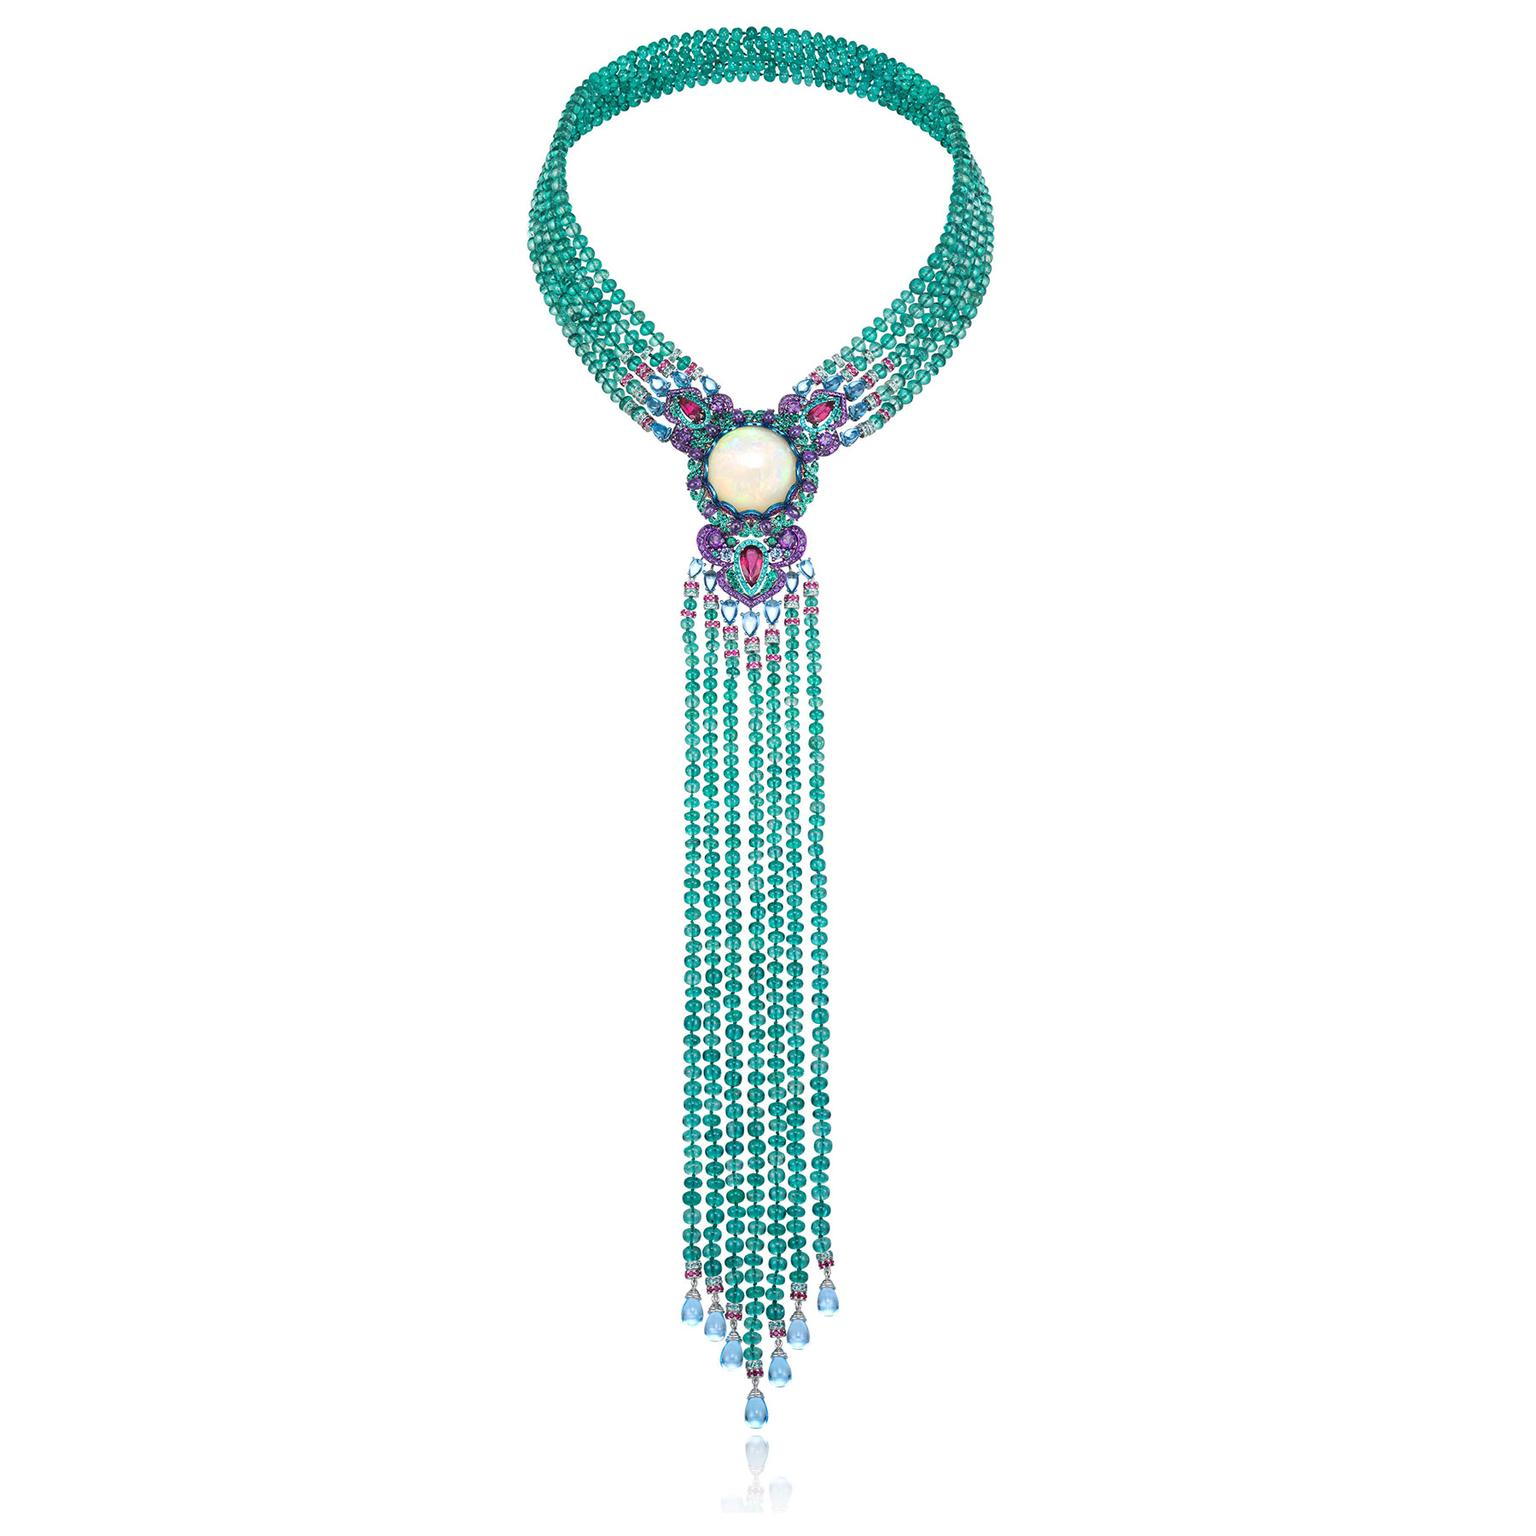 Chopard Red Carpet necklace with a white opal and emerald beads